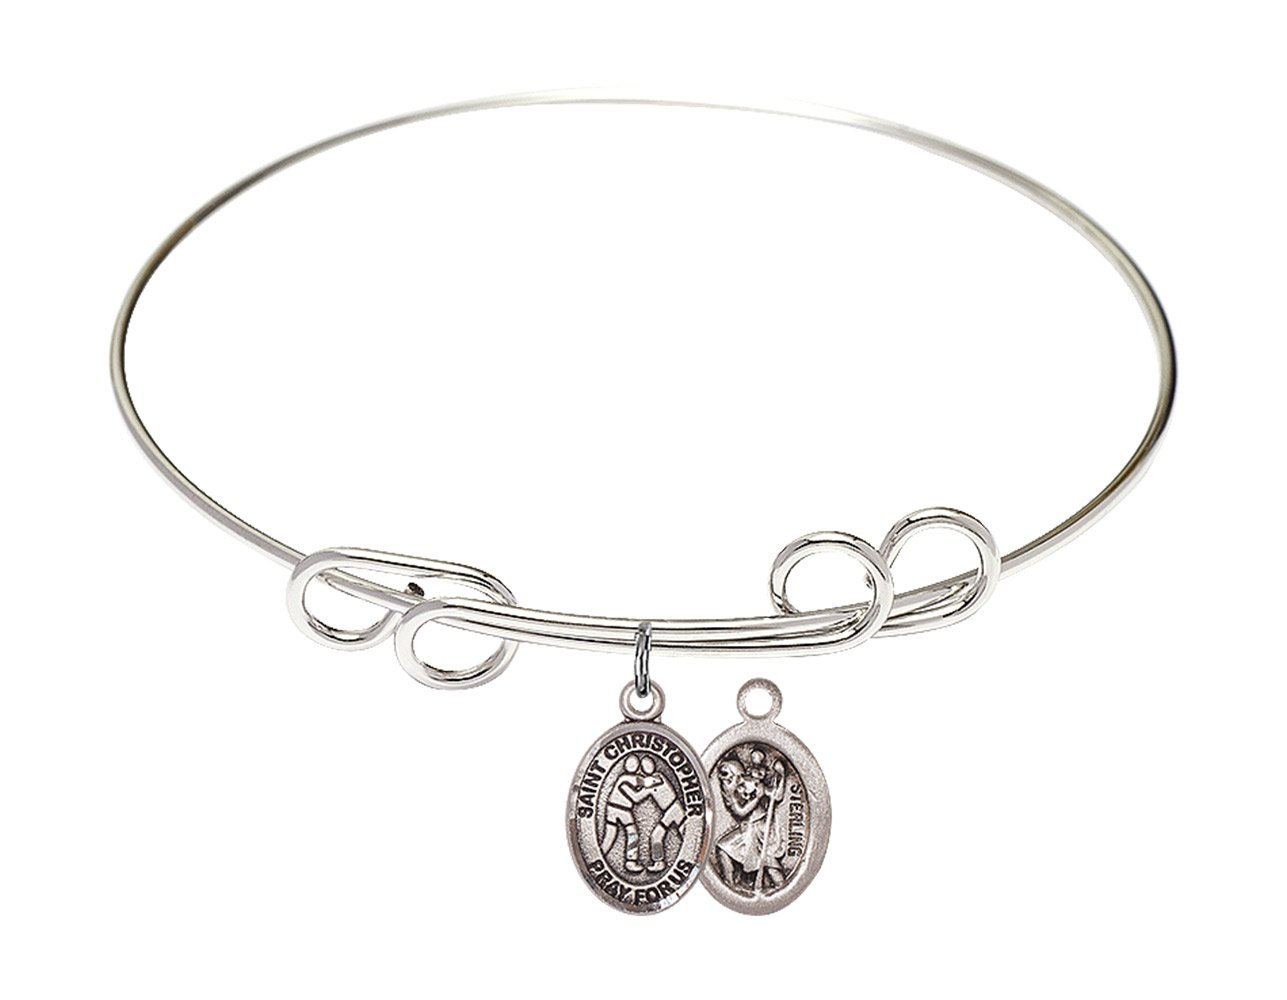 8 inch Round Double Loop Bangle Bracelet with a St. Christopher/Wrestling charm.